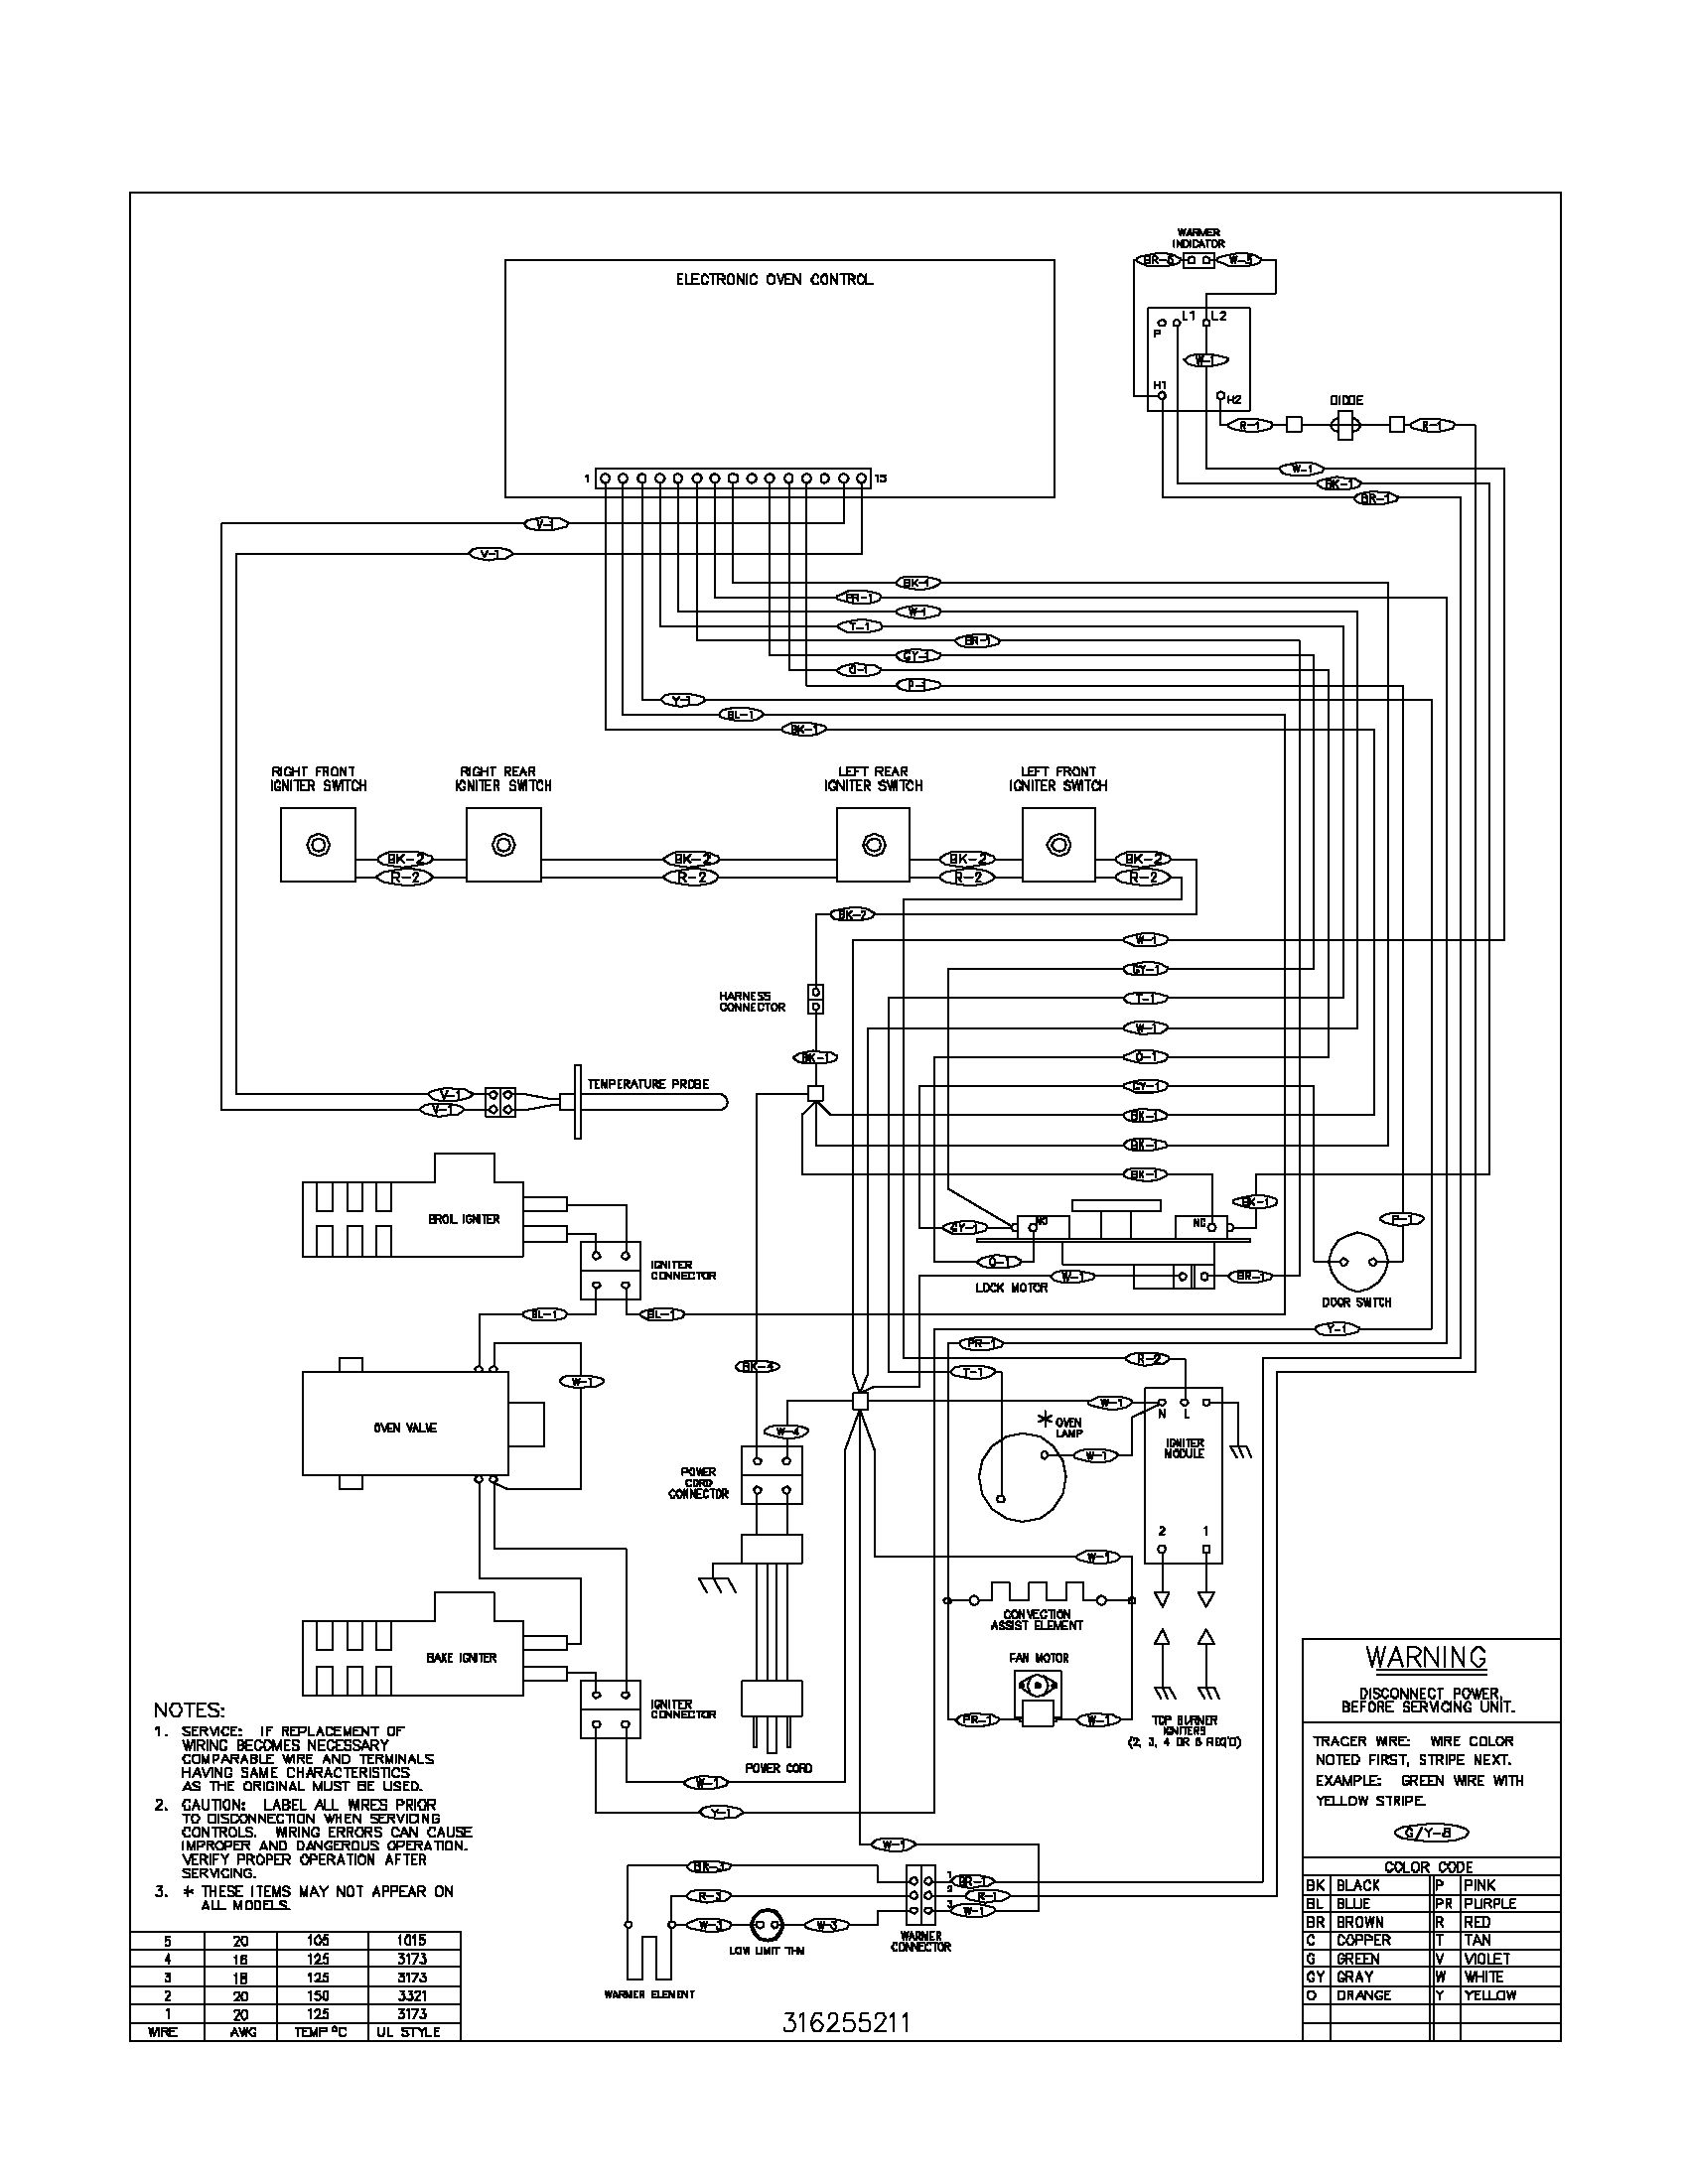 wiring diagram parts refrigerators parts kitchenaid dishwasher parts  at soozxer.org